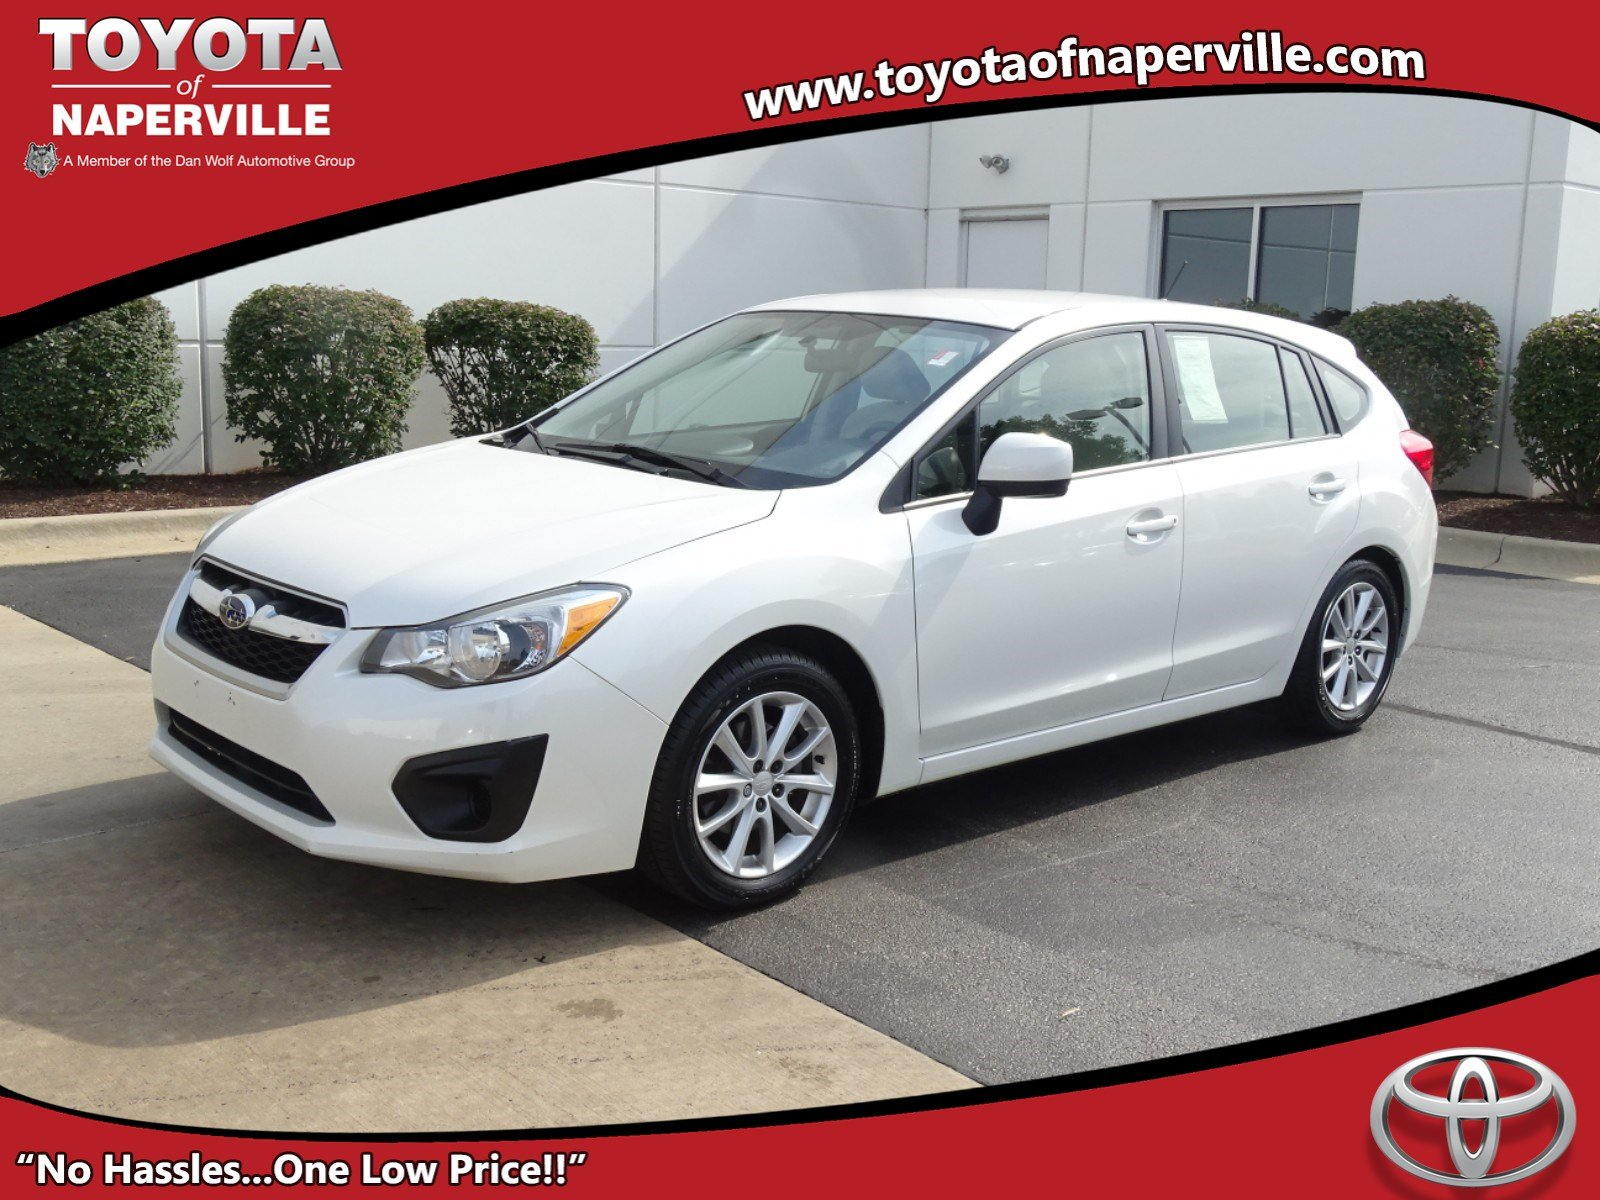 Pre Owned 2013 Subaru Impreza 2 0i Premium 4D Hatchback in